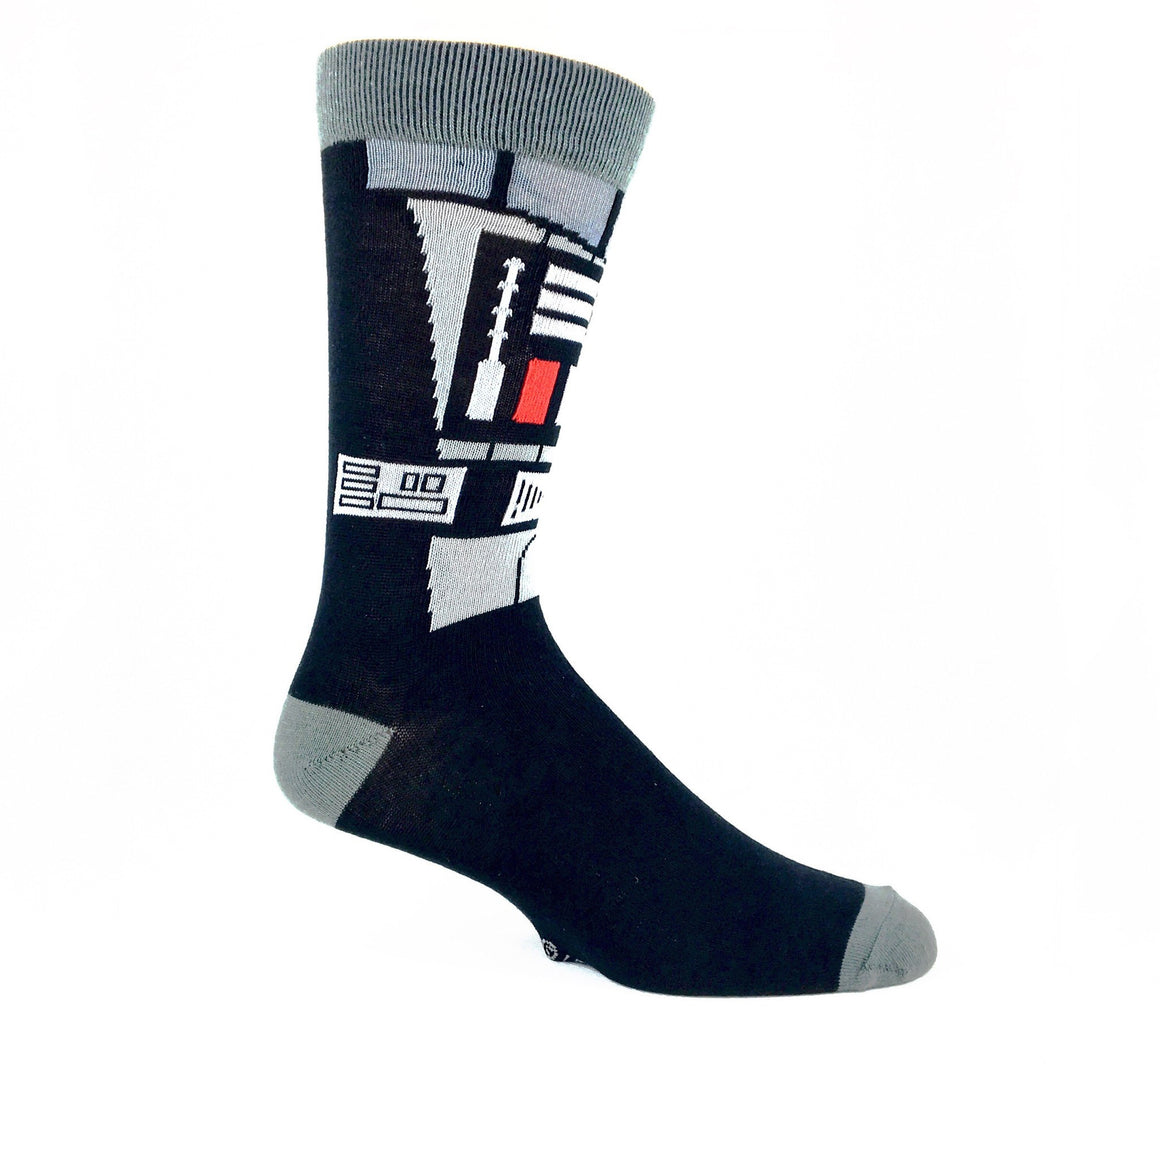 Socks - Star Wars Darth Vader Suit Socks